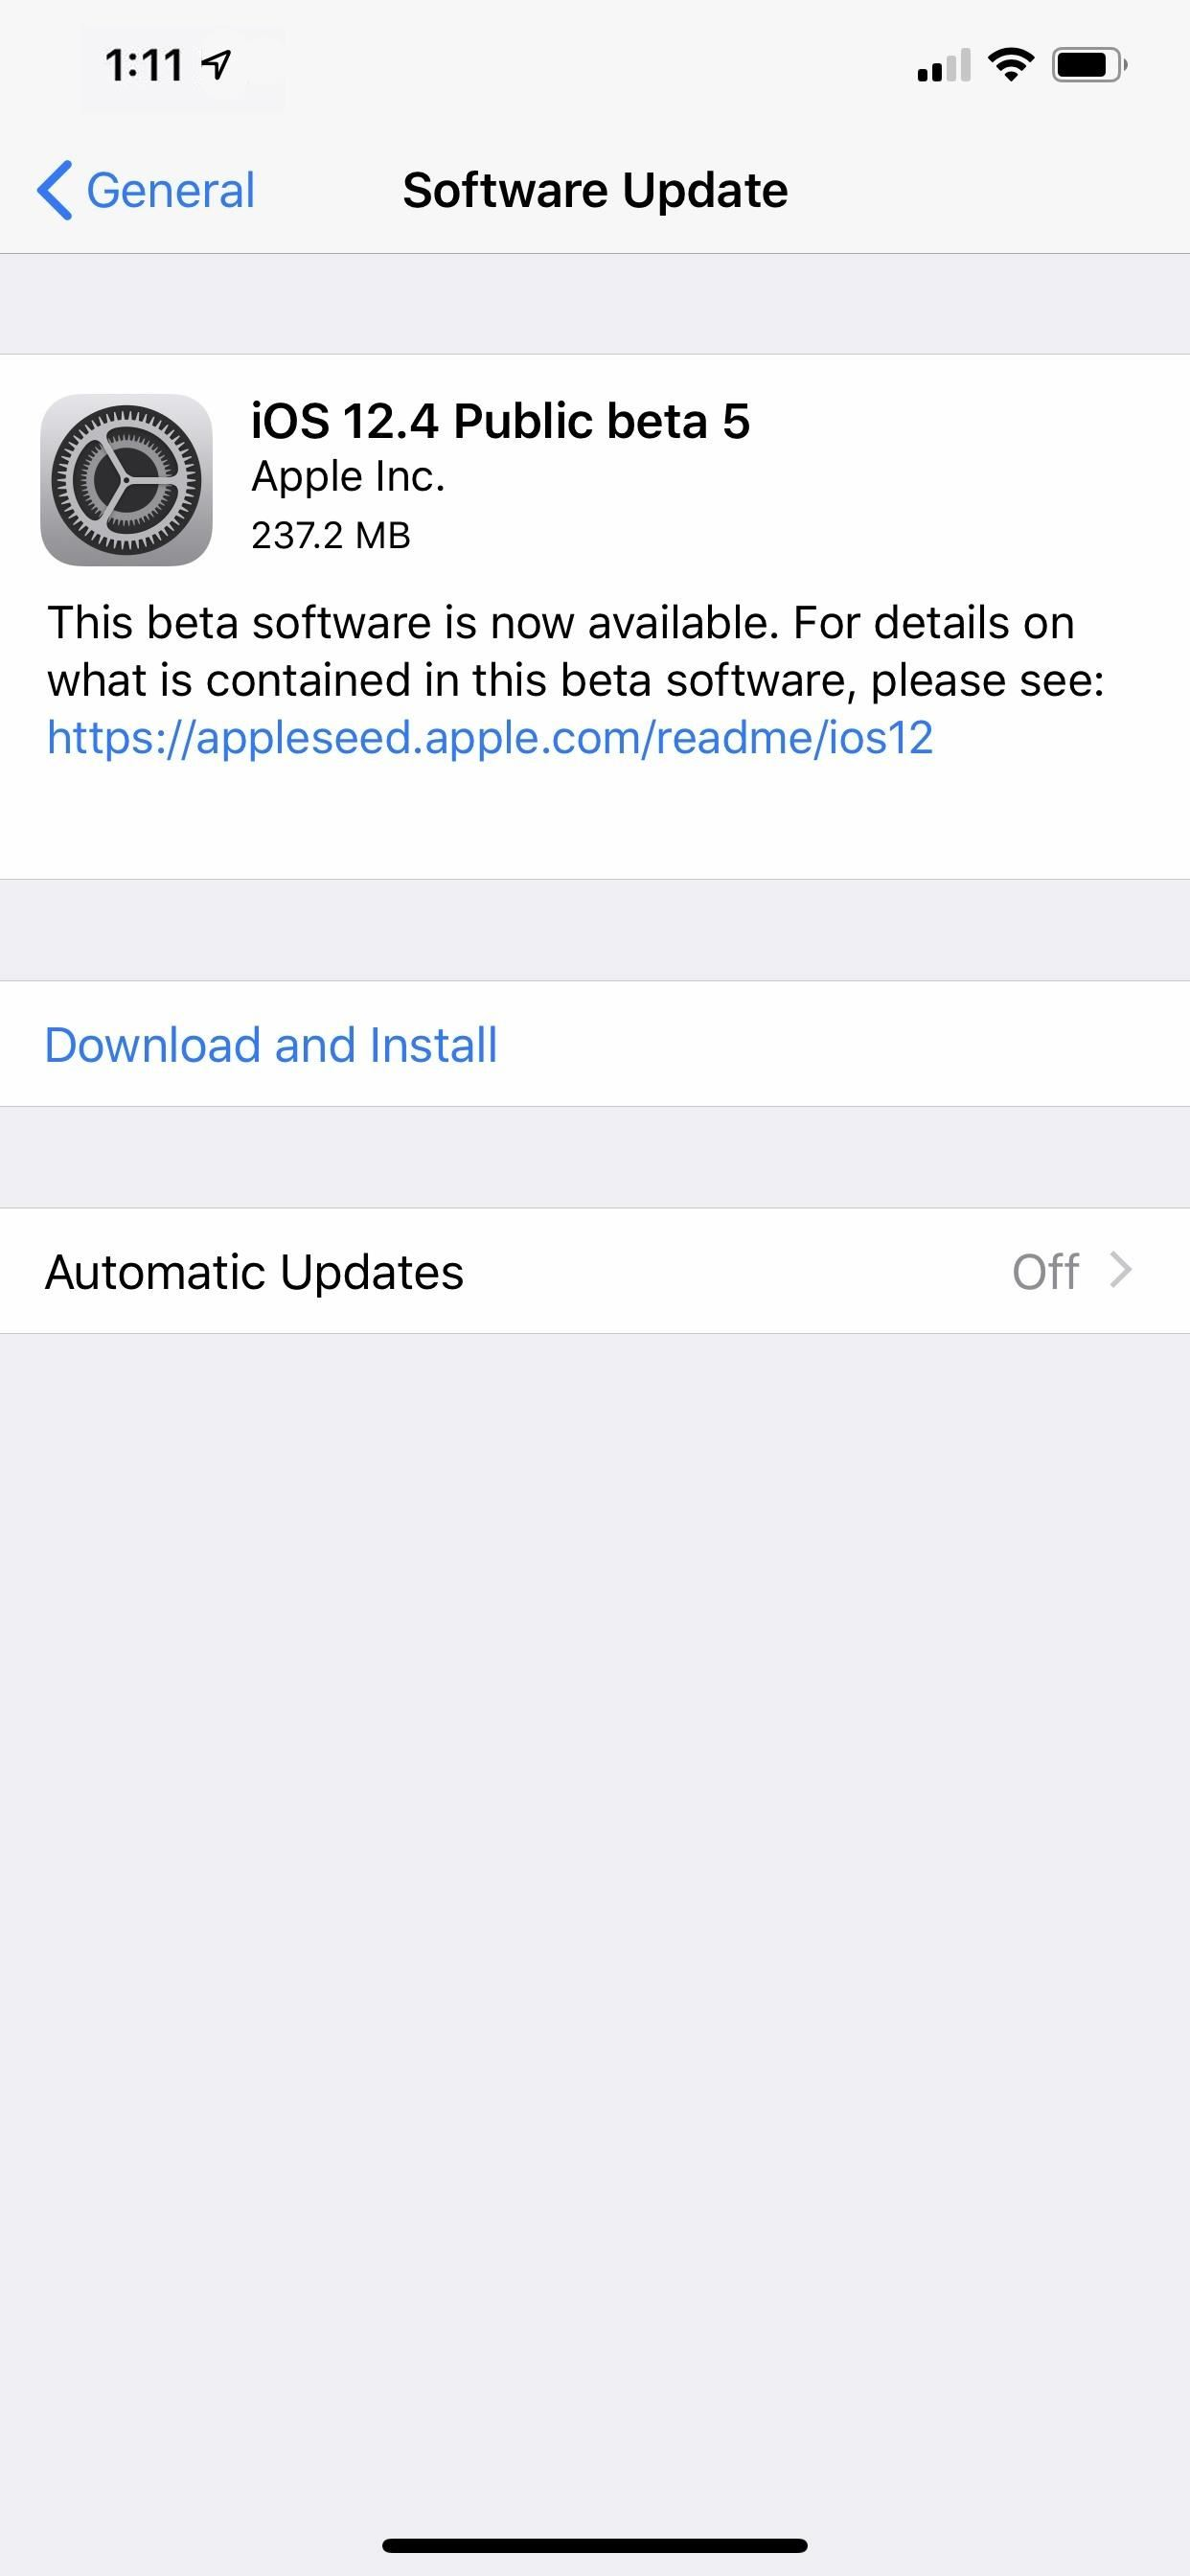 Apple Releases iOS 12.4 Beta 5 for Developers & Public Beta Testers